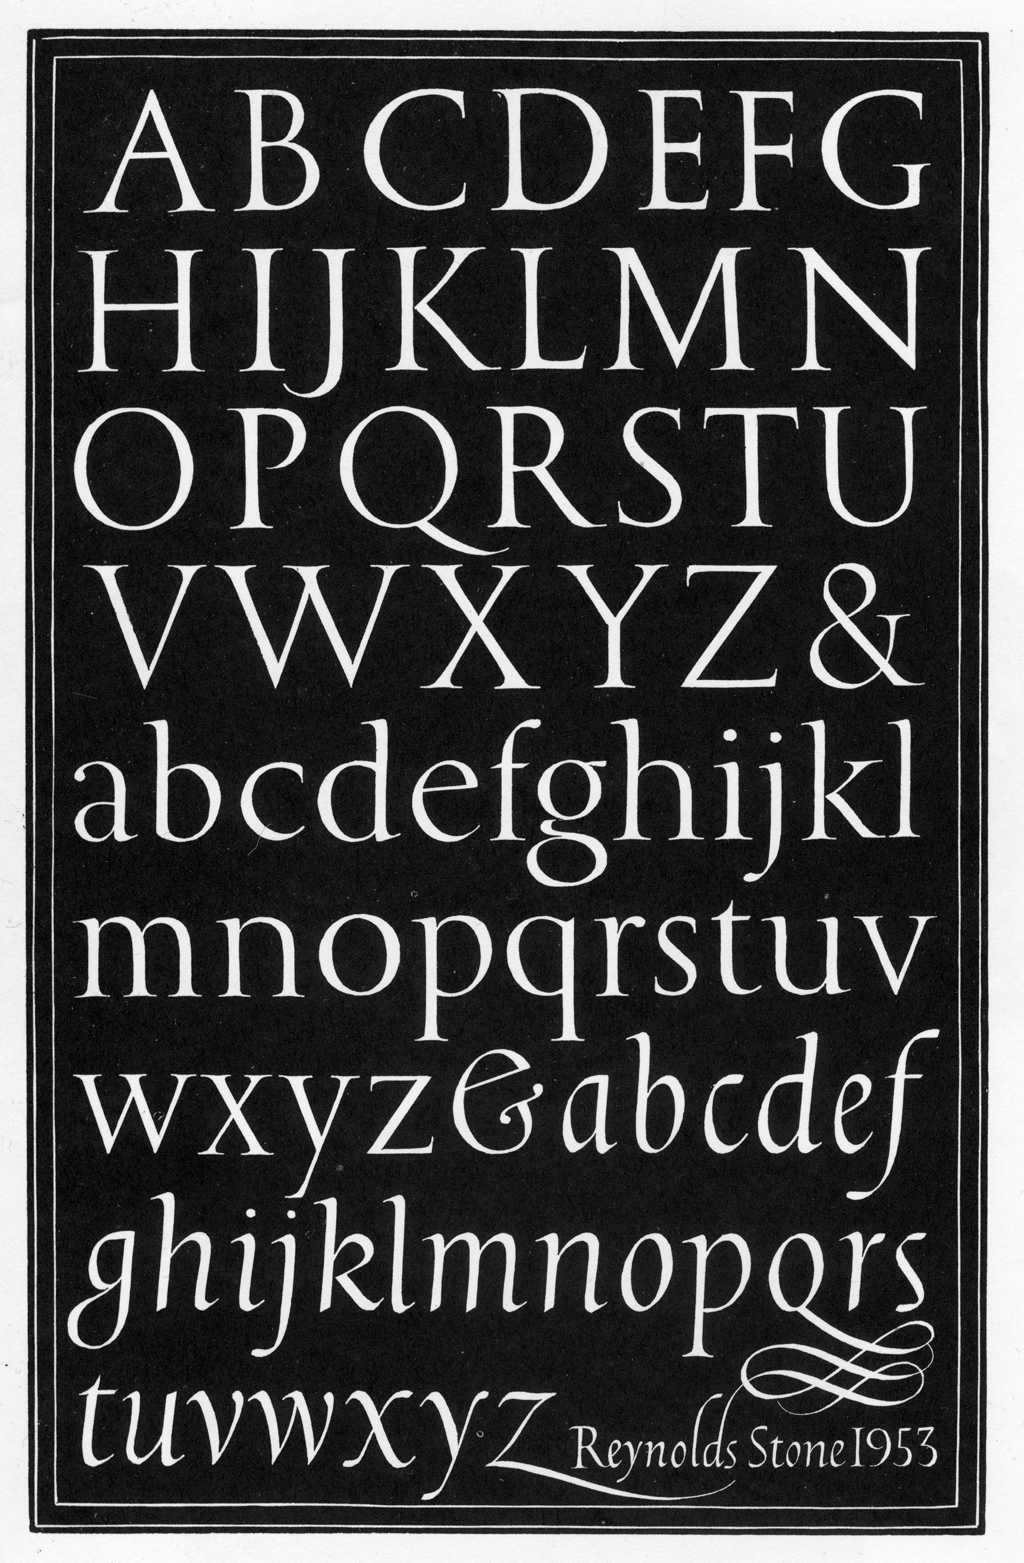 Wood engraved alphabets by Reynolds Stone (1953). Courtesy of Humphrey Stone.